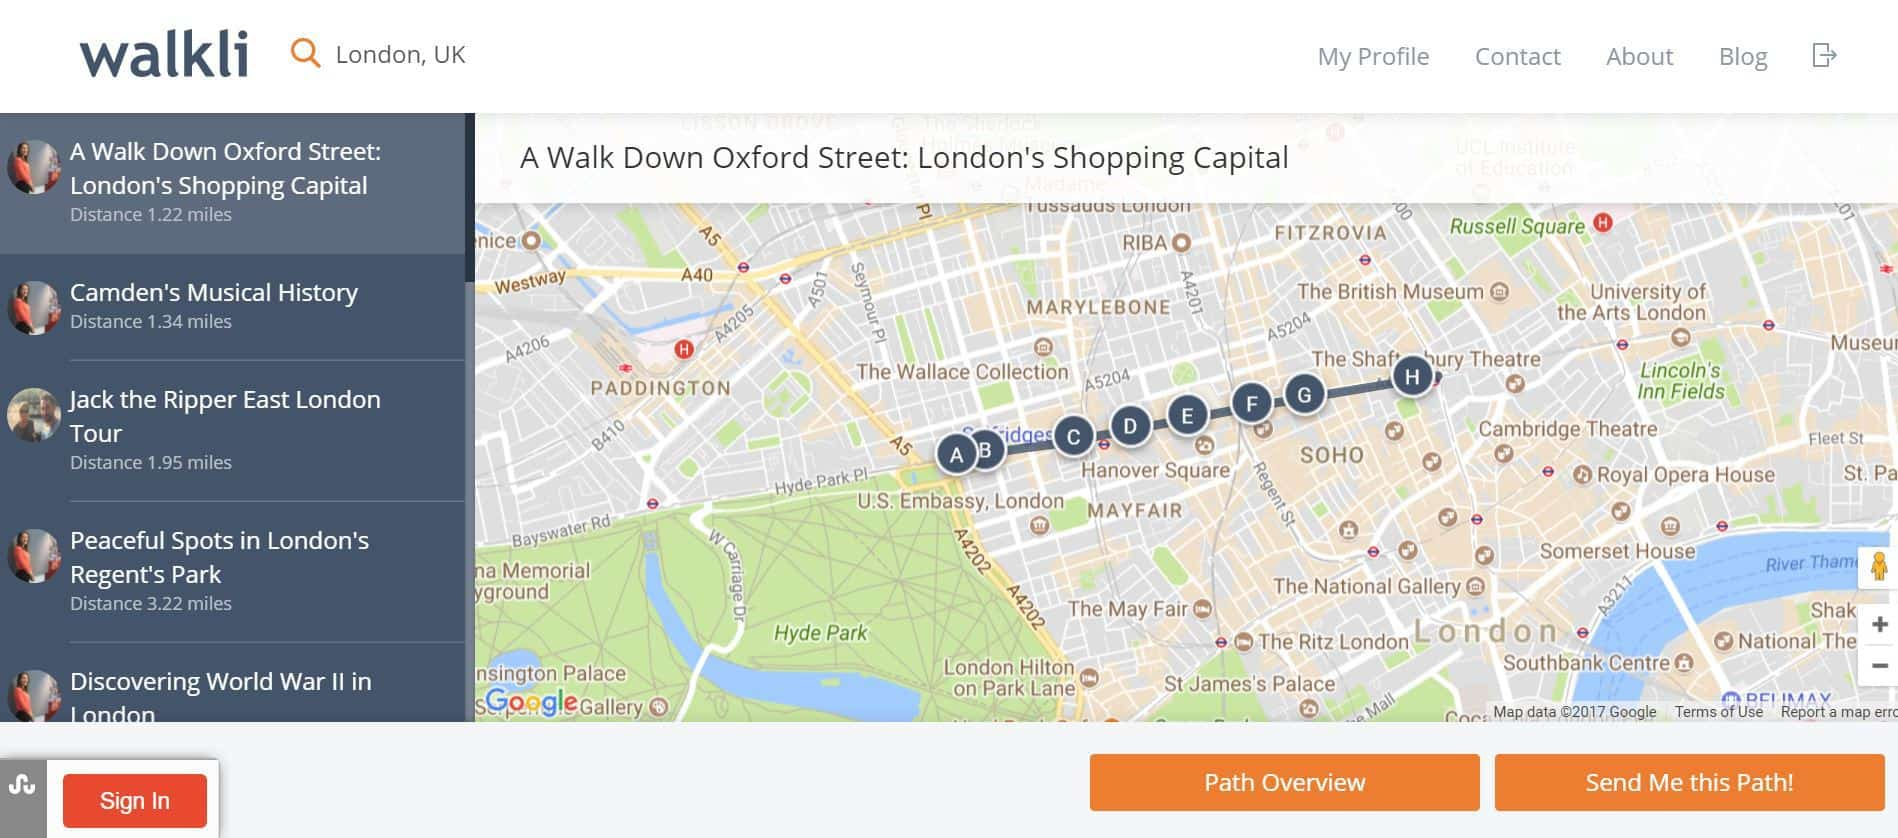 Walkli Review Map